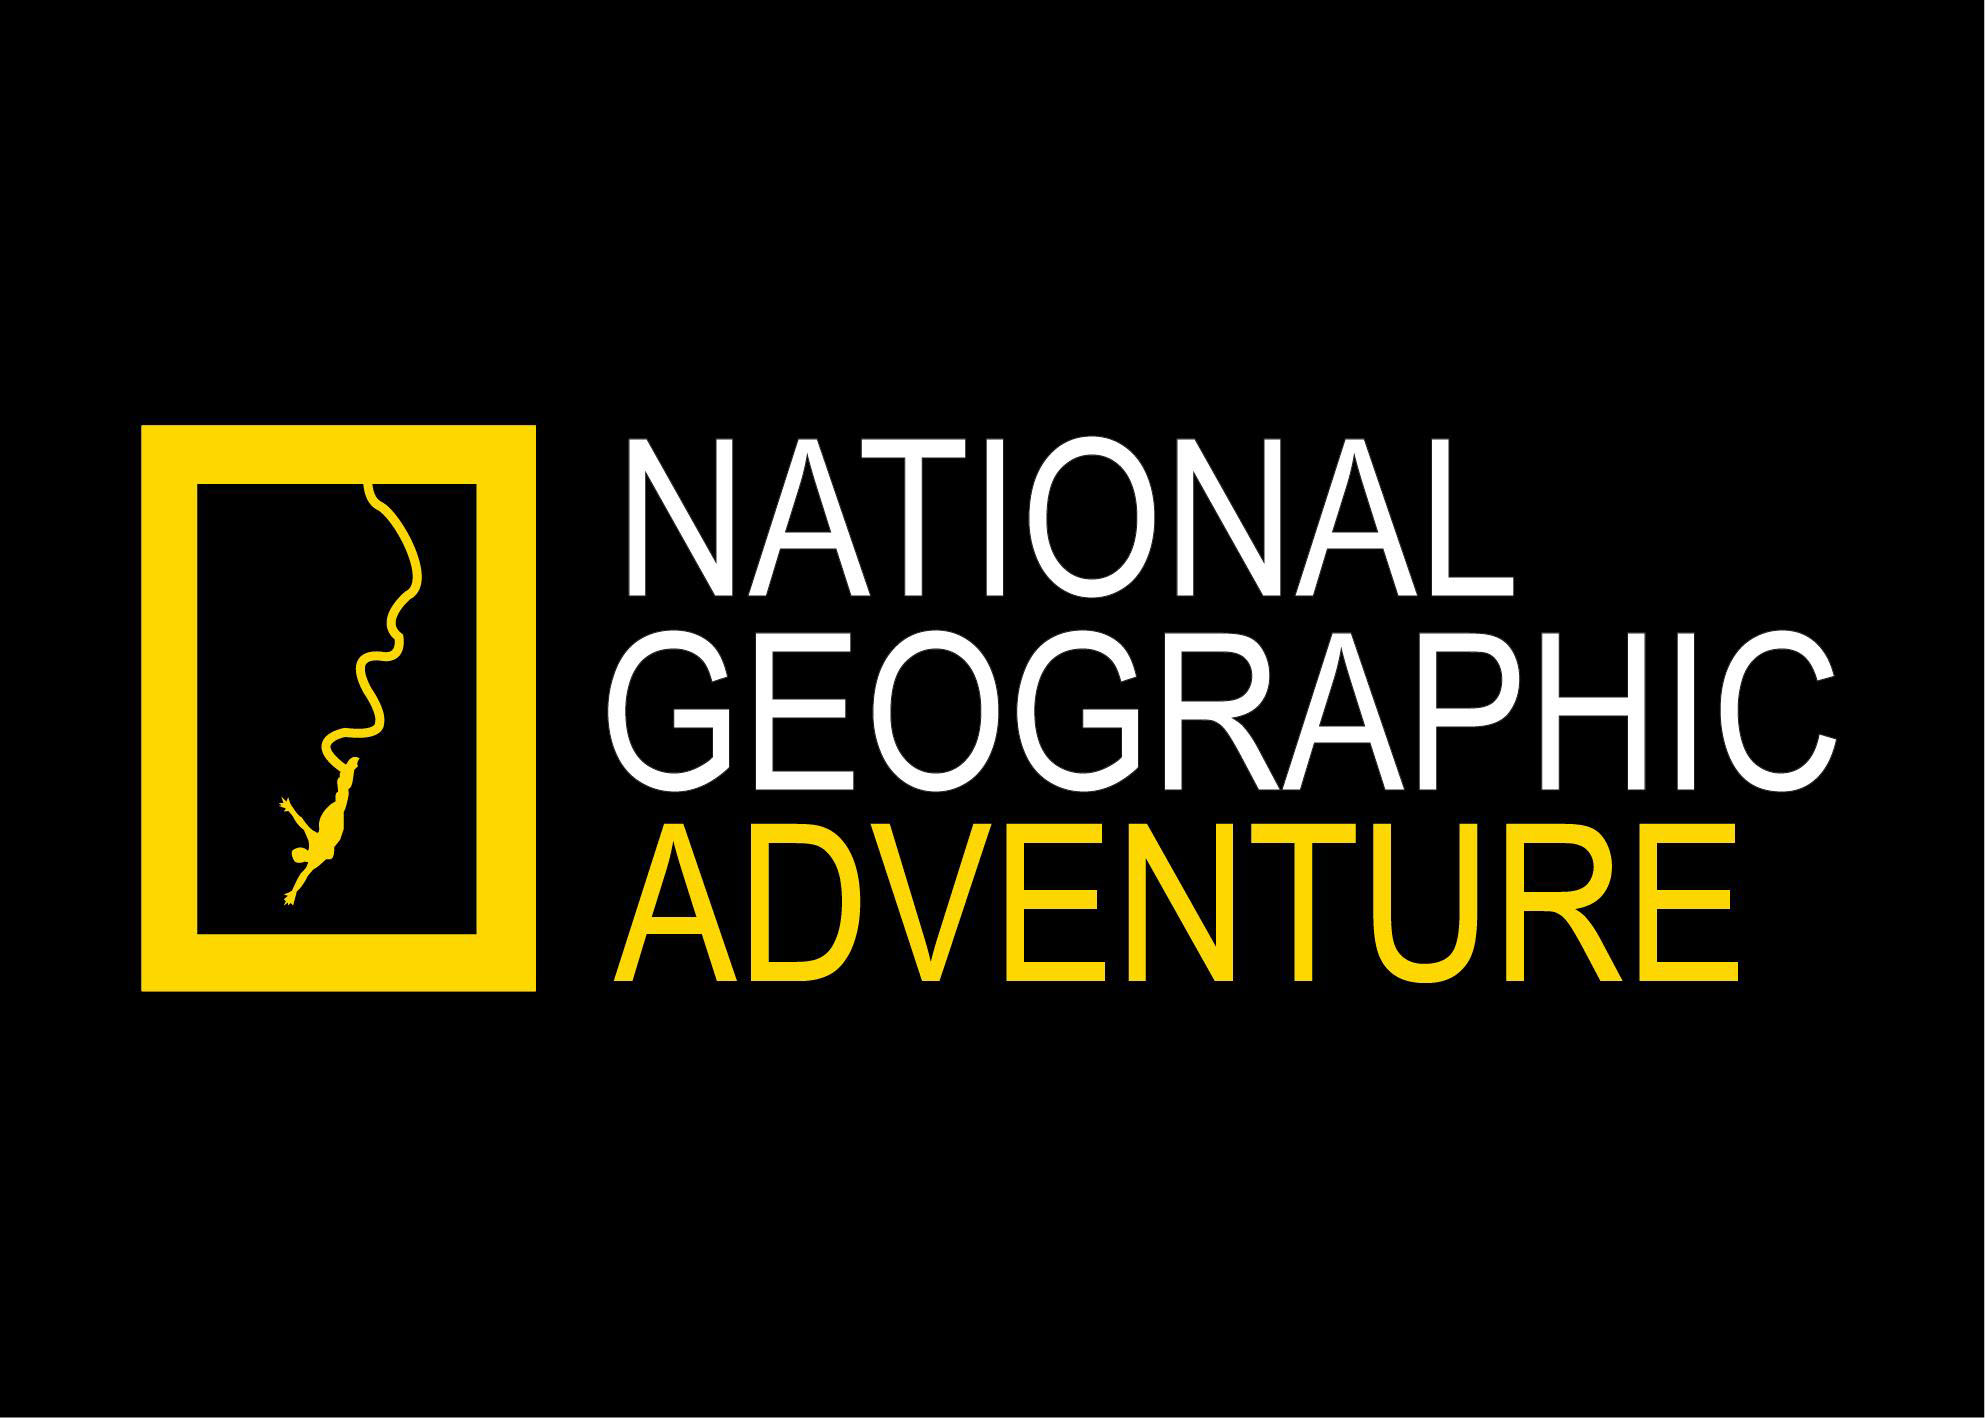 National Geographic Society Graduation Project On Behance